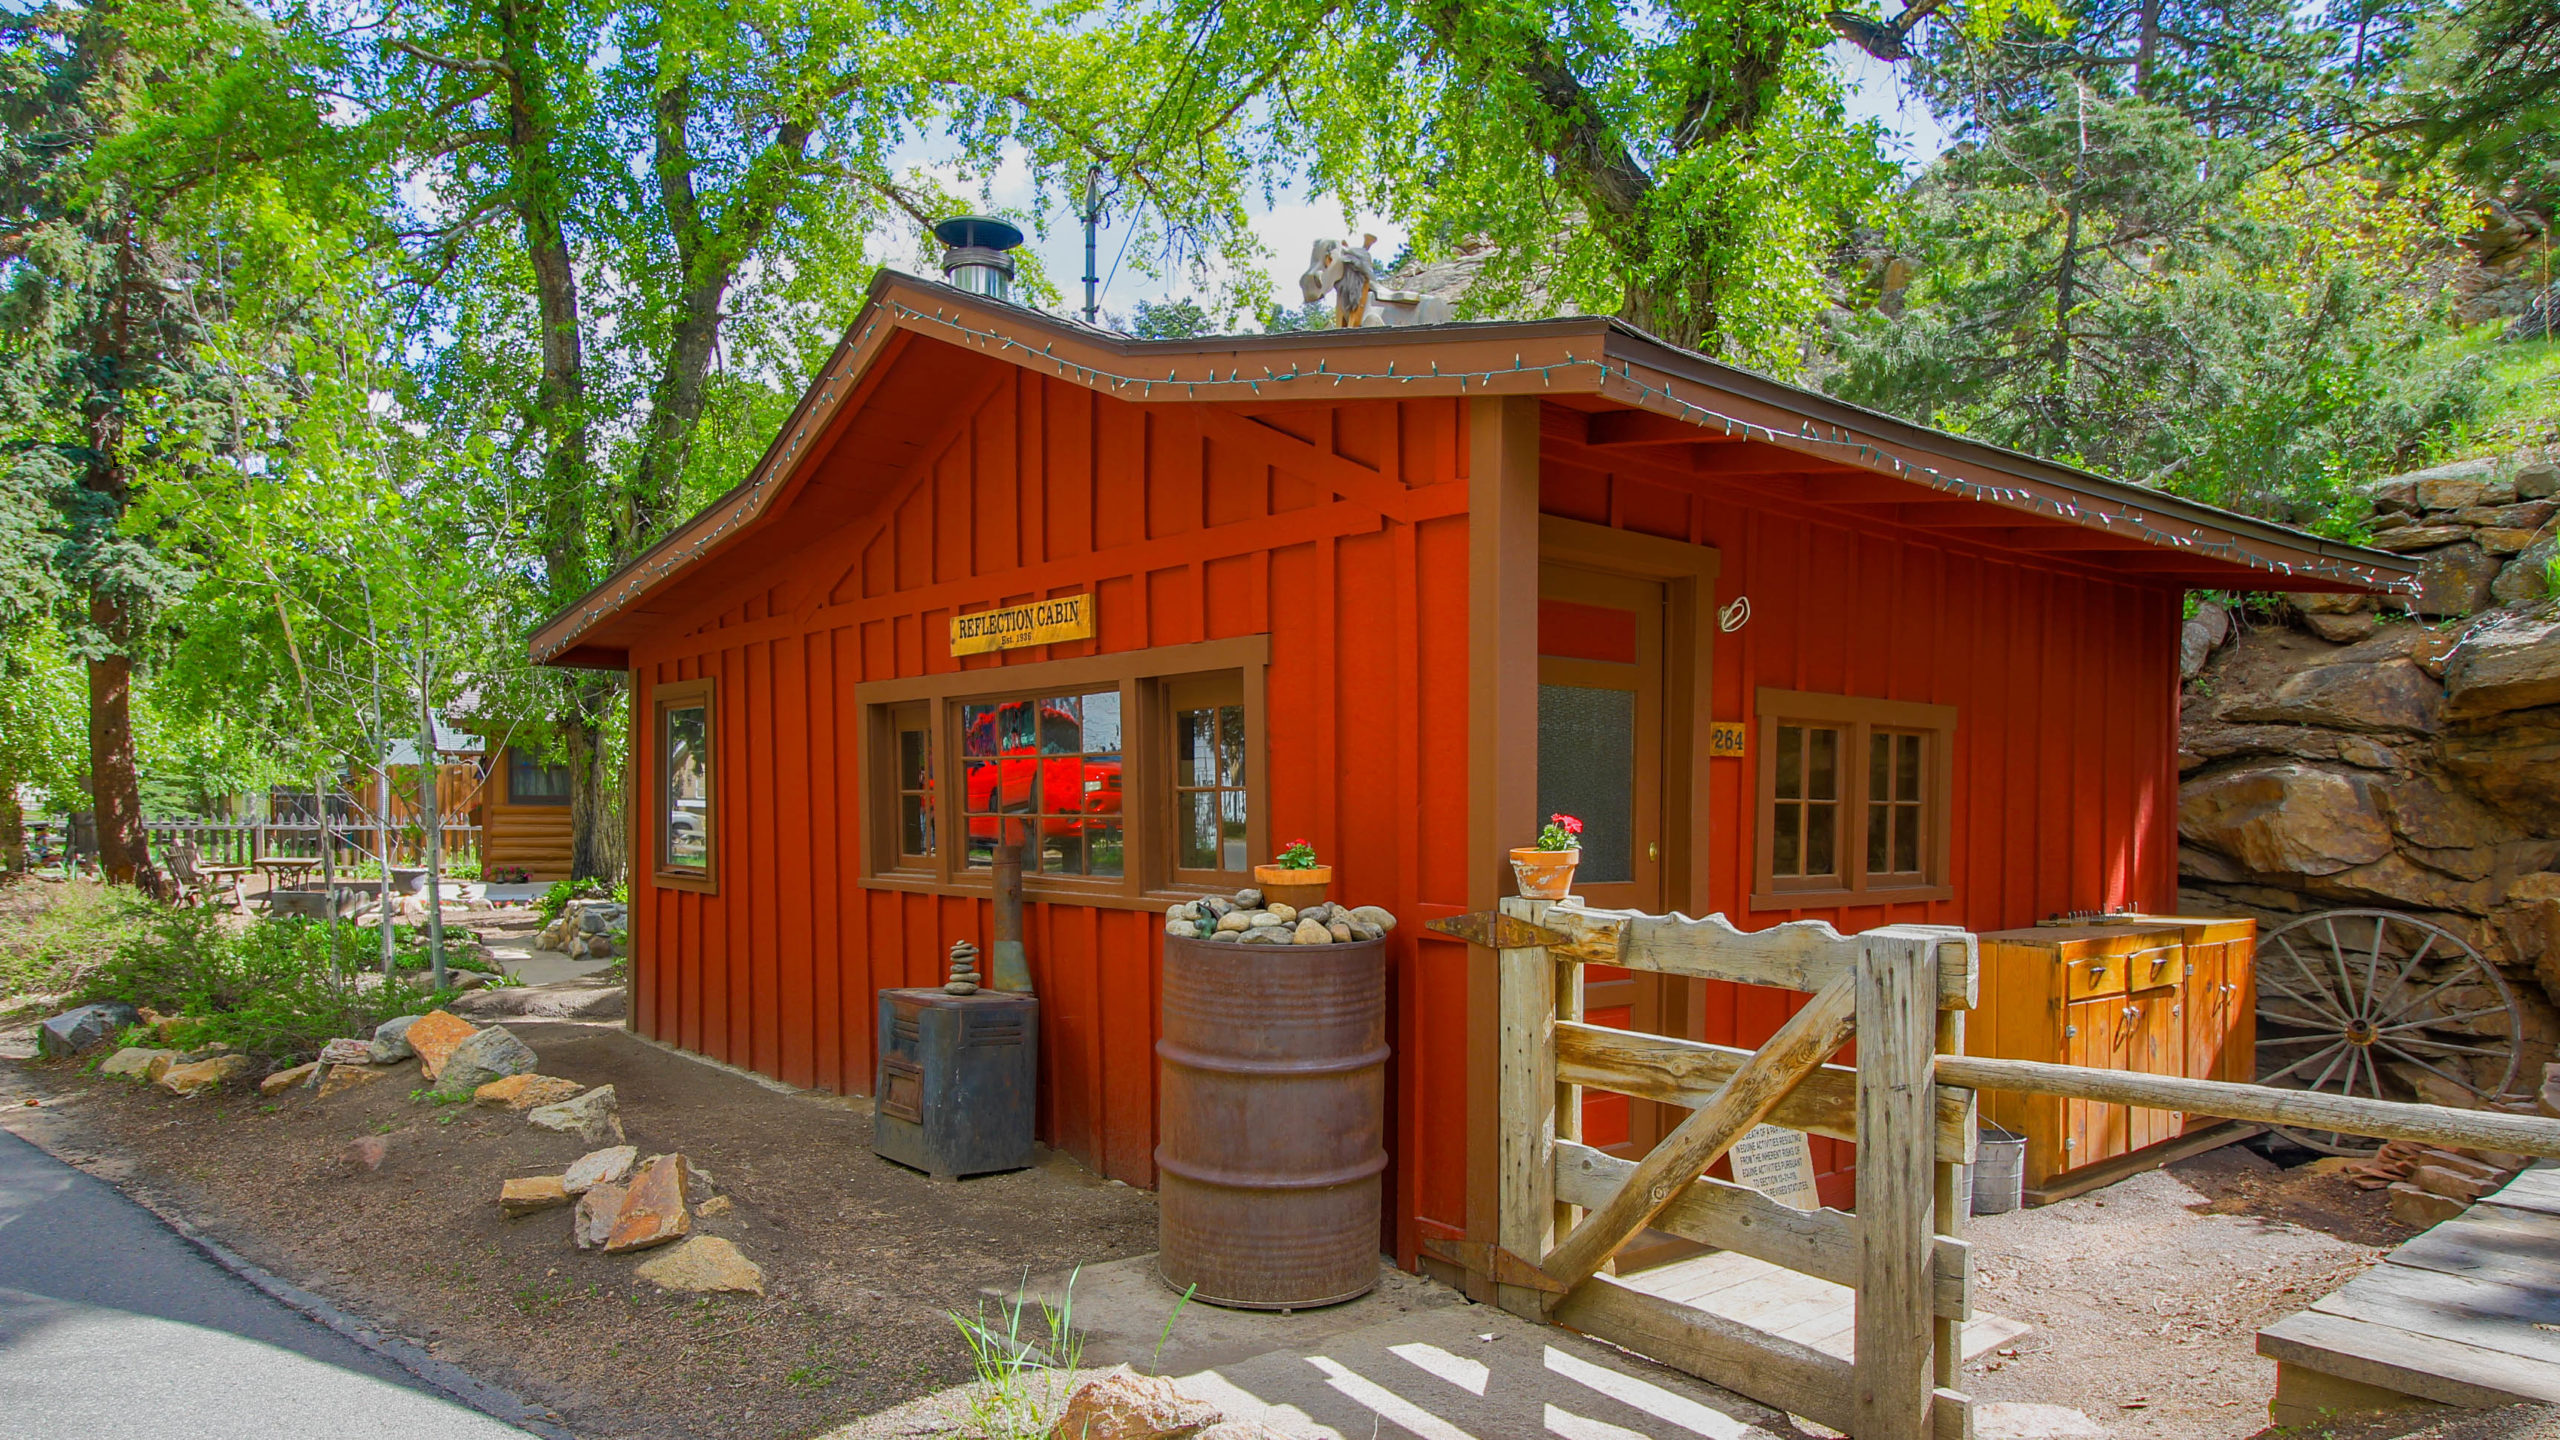 This in an image of Reflection Cabin. It is an extraordinary vacation rental cabin near RMNP in Estes Park CO USA.